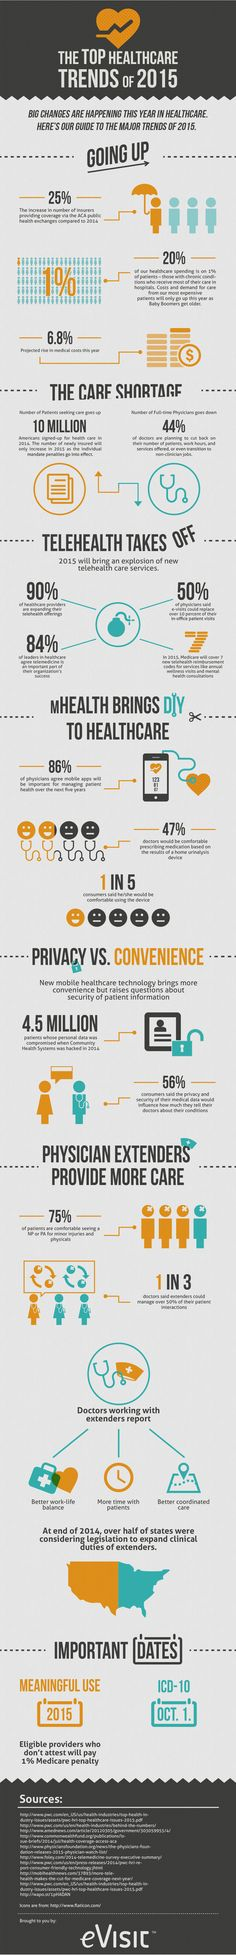 able to look at what trends are in the healthcare industry